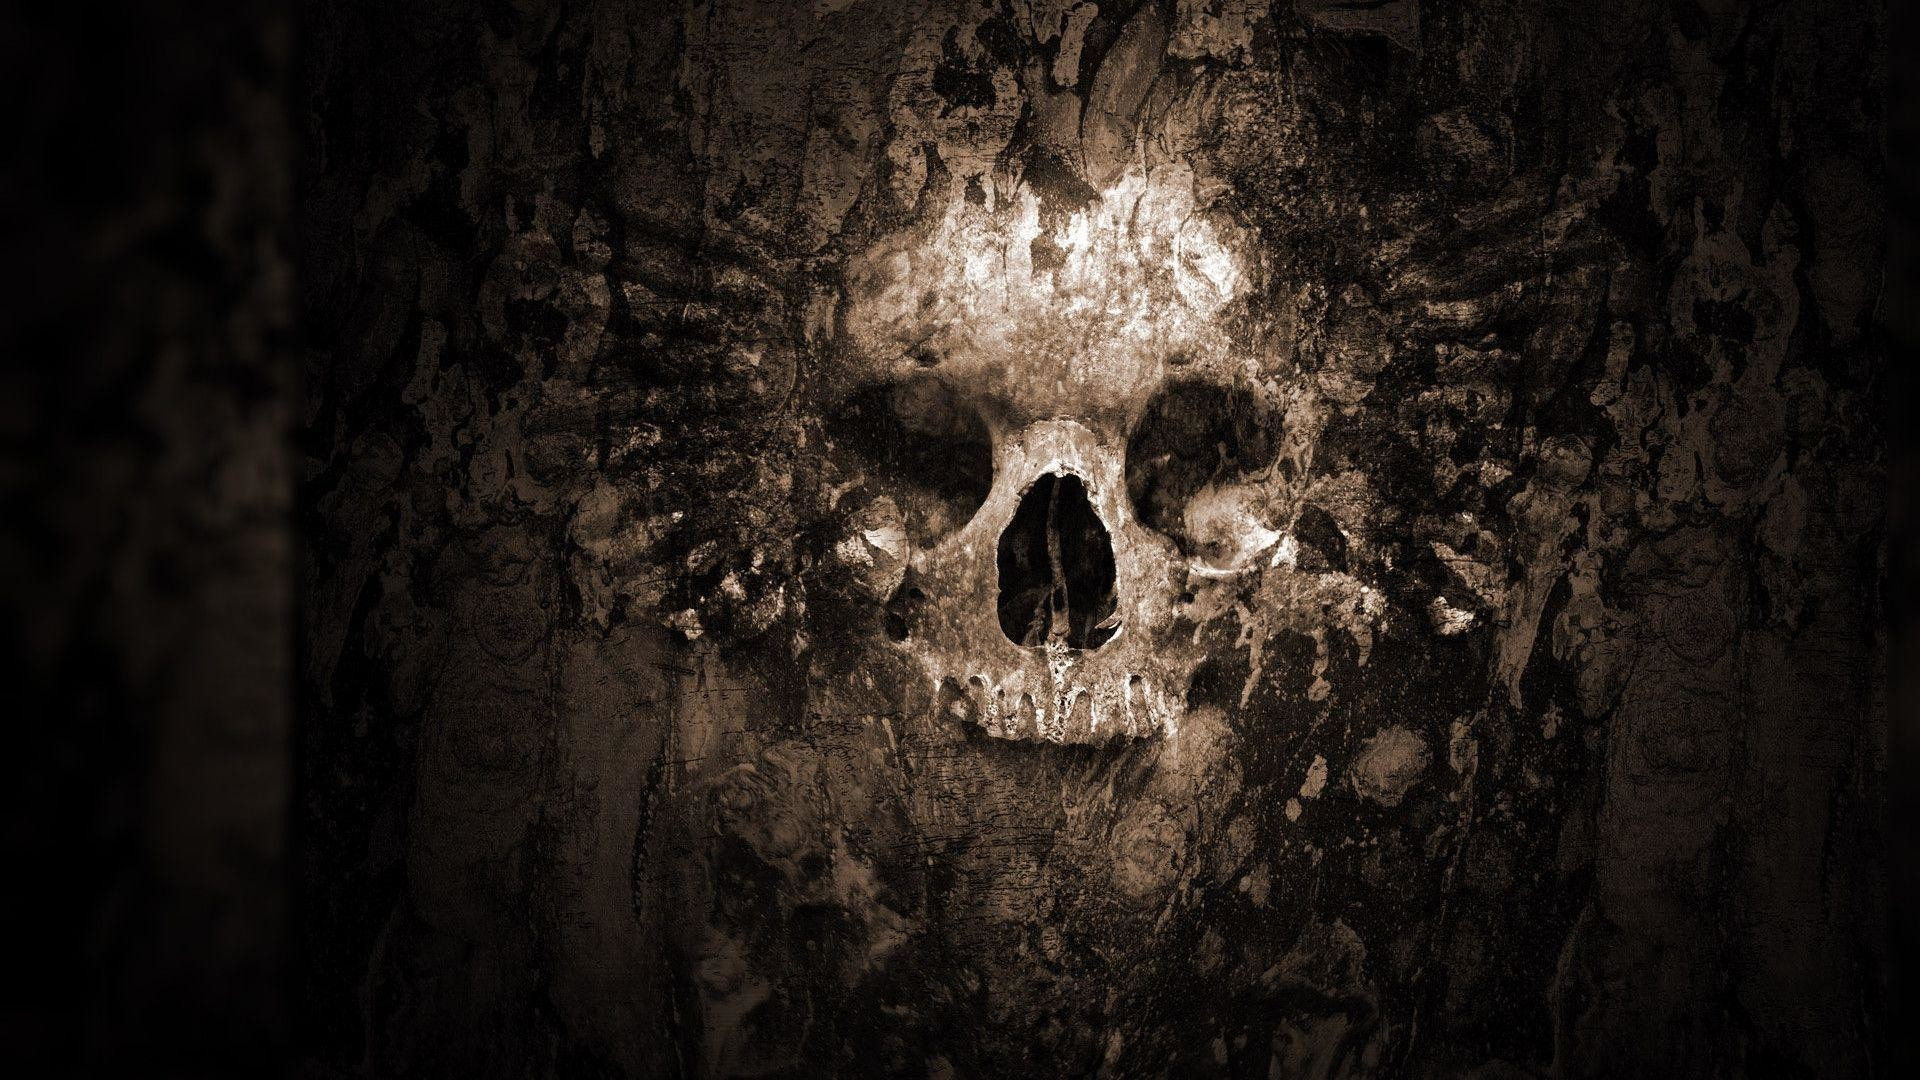 1920x1080 Creepy Halloween Backgrounds - Wallpaper Cave. Creepy Halloween Backgrounds  Wallpaper Cave